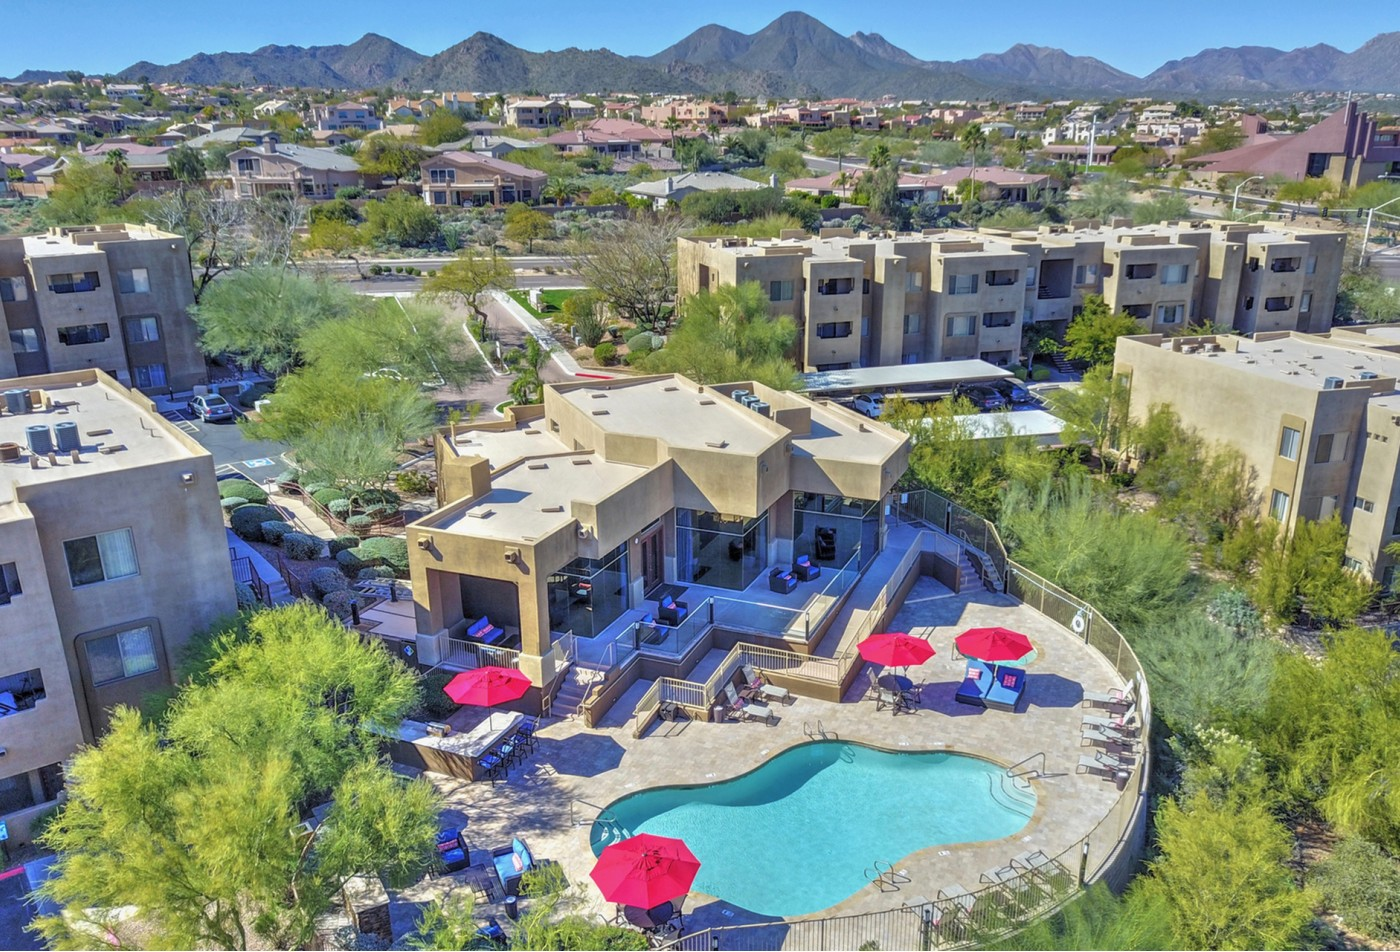 Arrial view of Ridge View Apartments in Fountain Hills, AZ